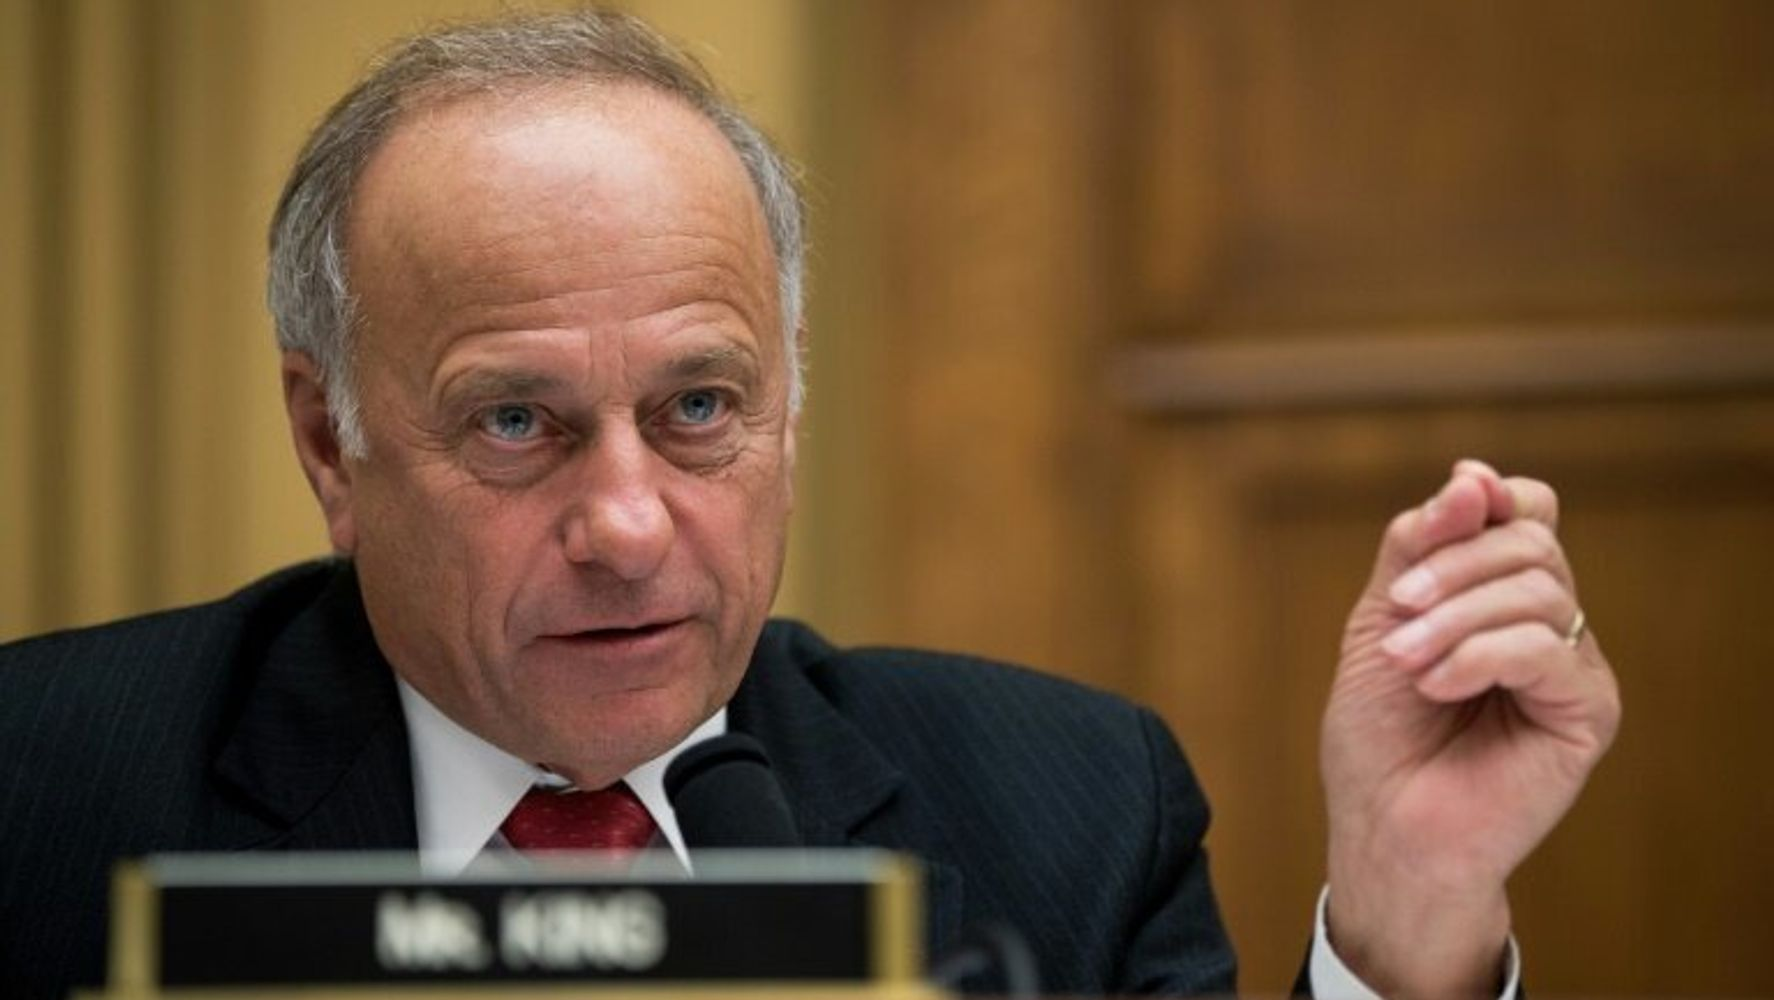 Westlake Legal Group 5d5441b52200003100f598f3 Rep. Steve King Says Lots Of Us Wouldn't Be Here Without Rape, Incest